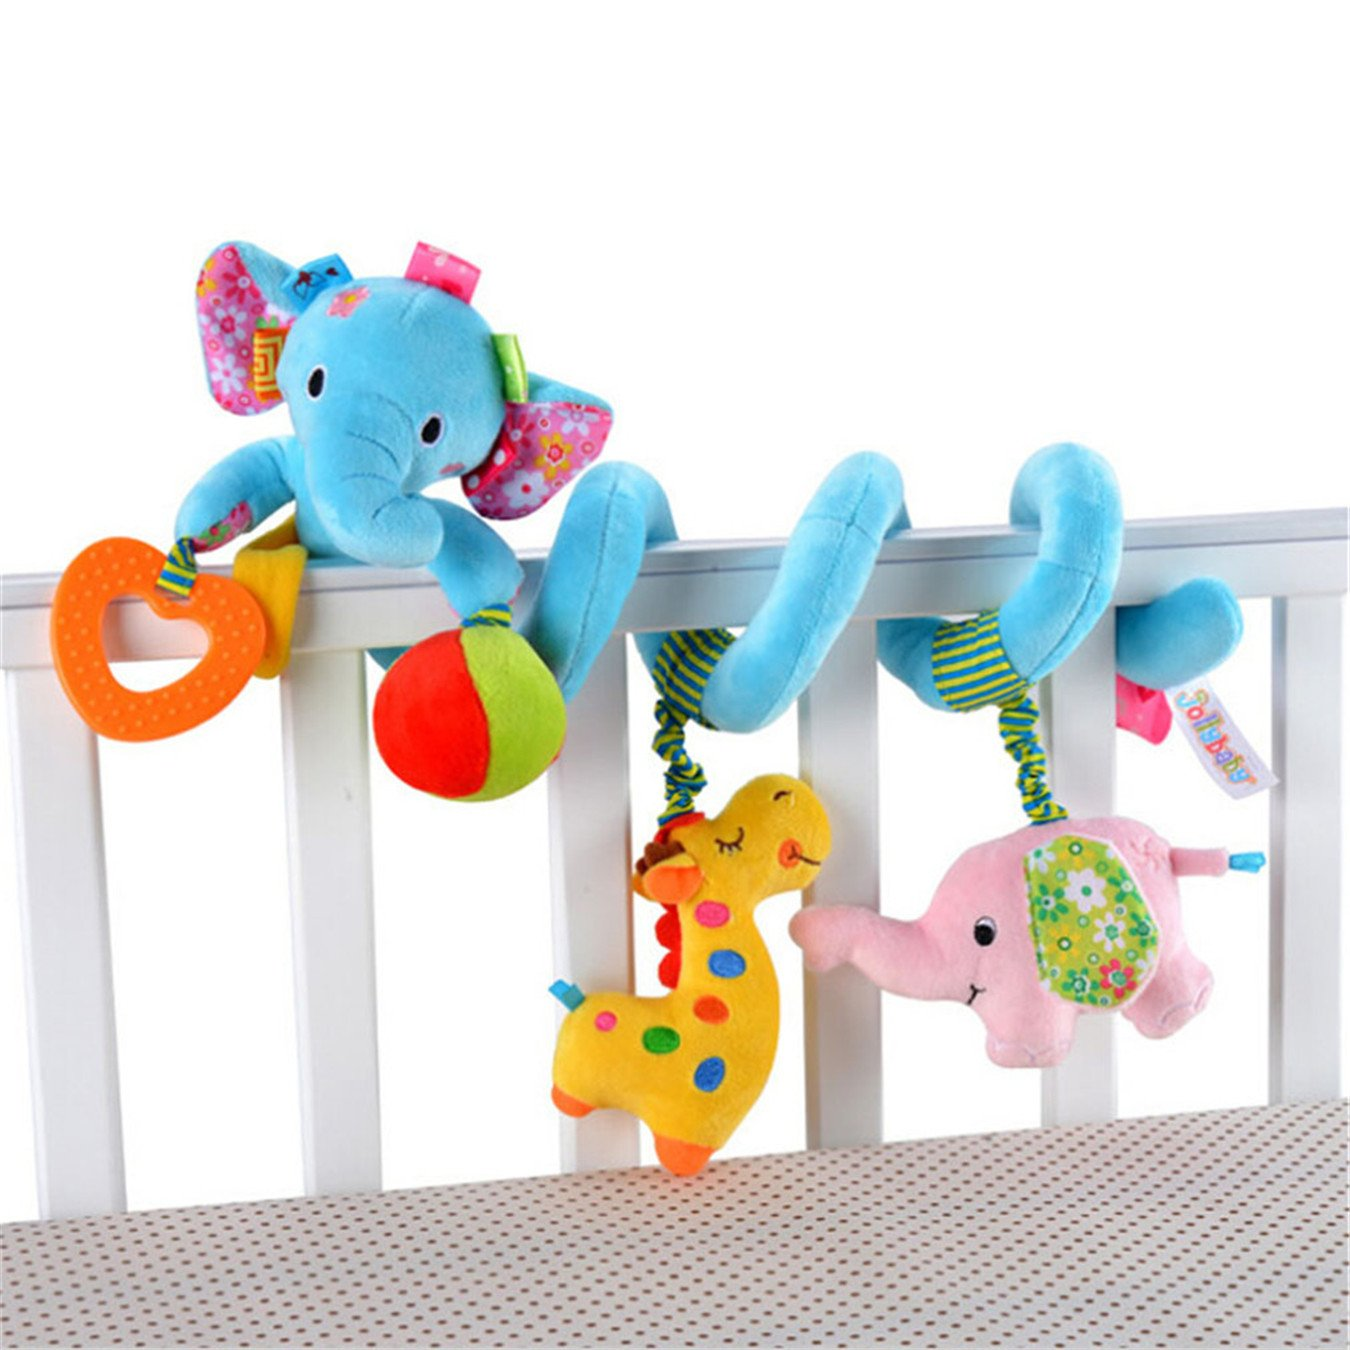 Baby Toddler Car Bed Stroller Hanging Animal Blue Elephant Spiral Activity Toys by CH   B01EFQ822M